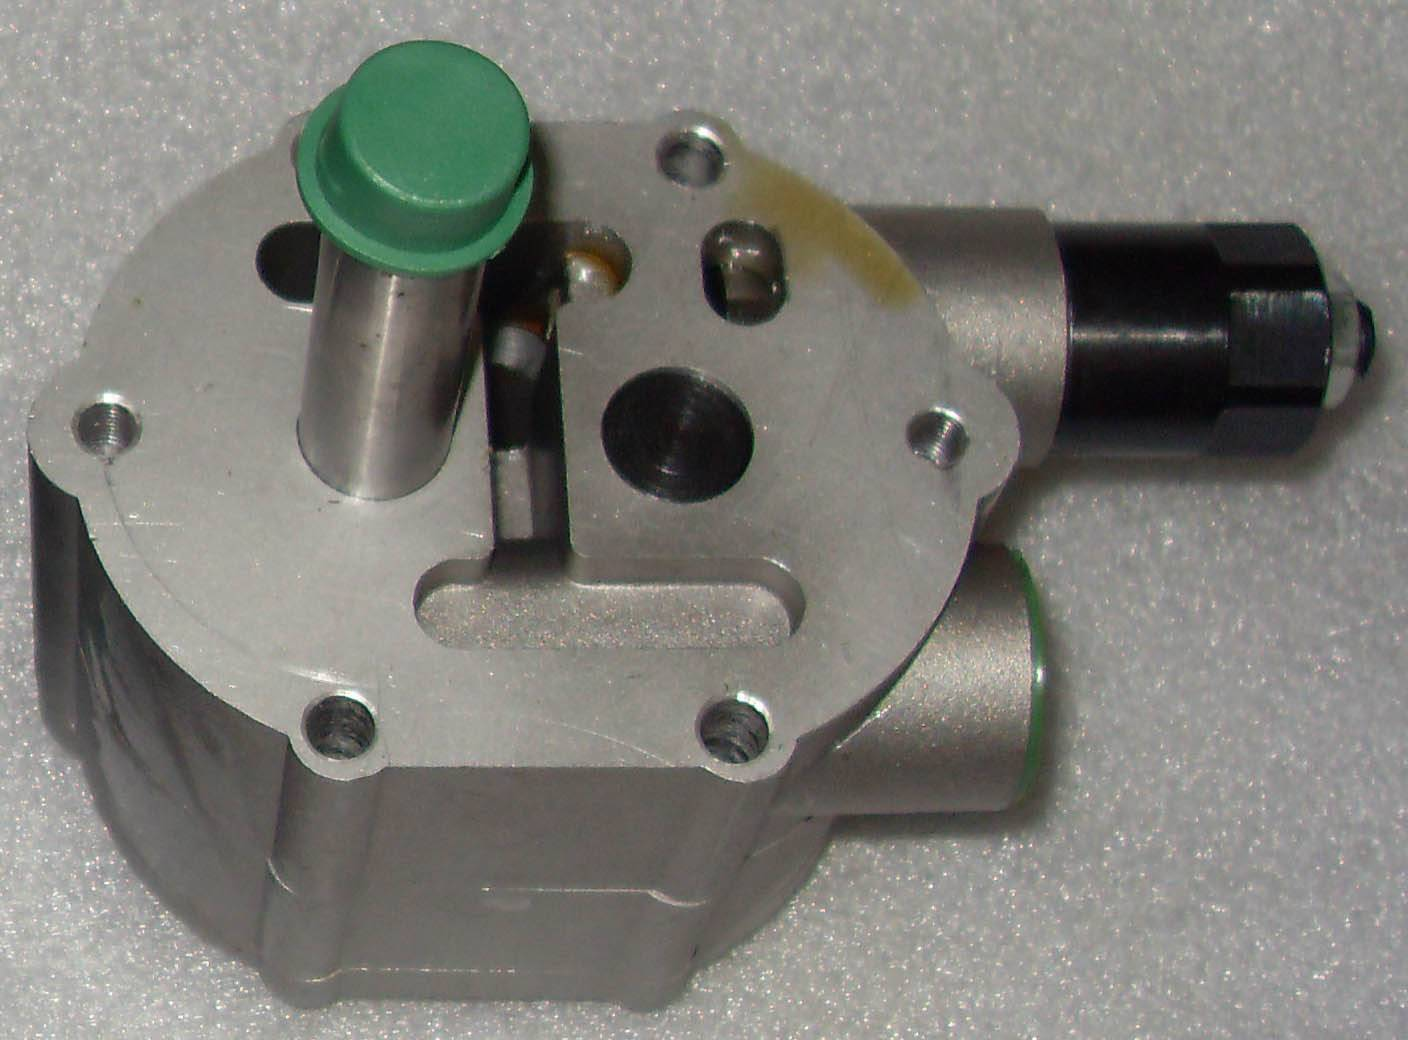 Sauer PV23 charge pump